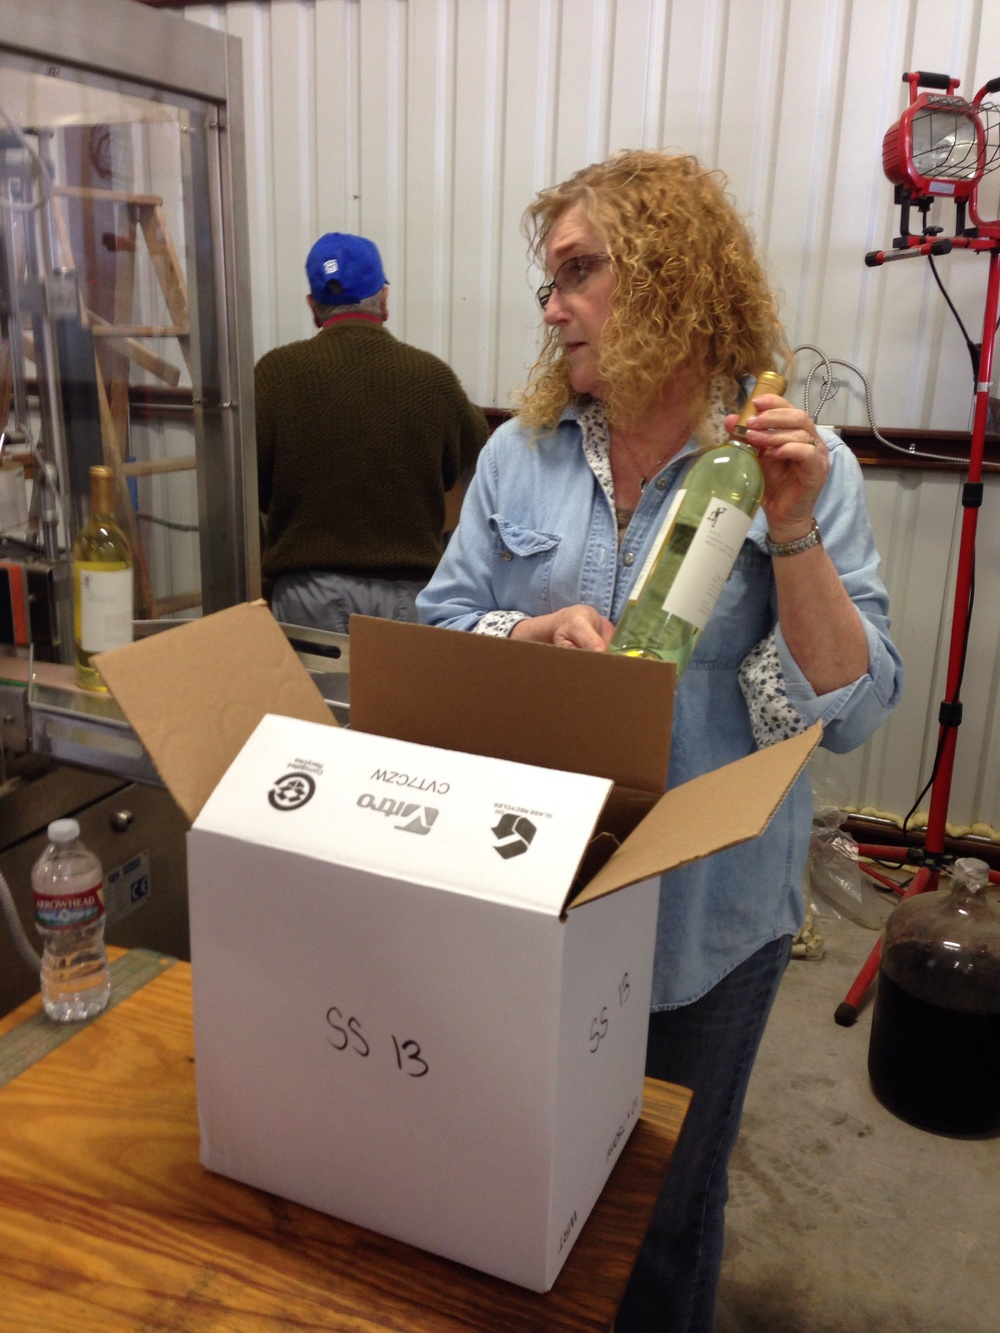 Our loyal friend Deb helping to box up new supply